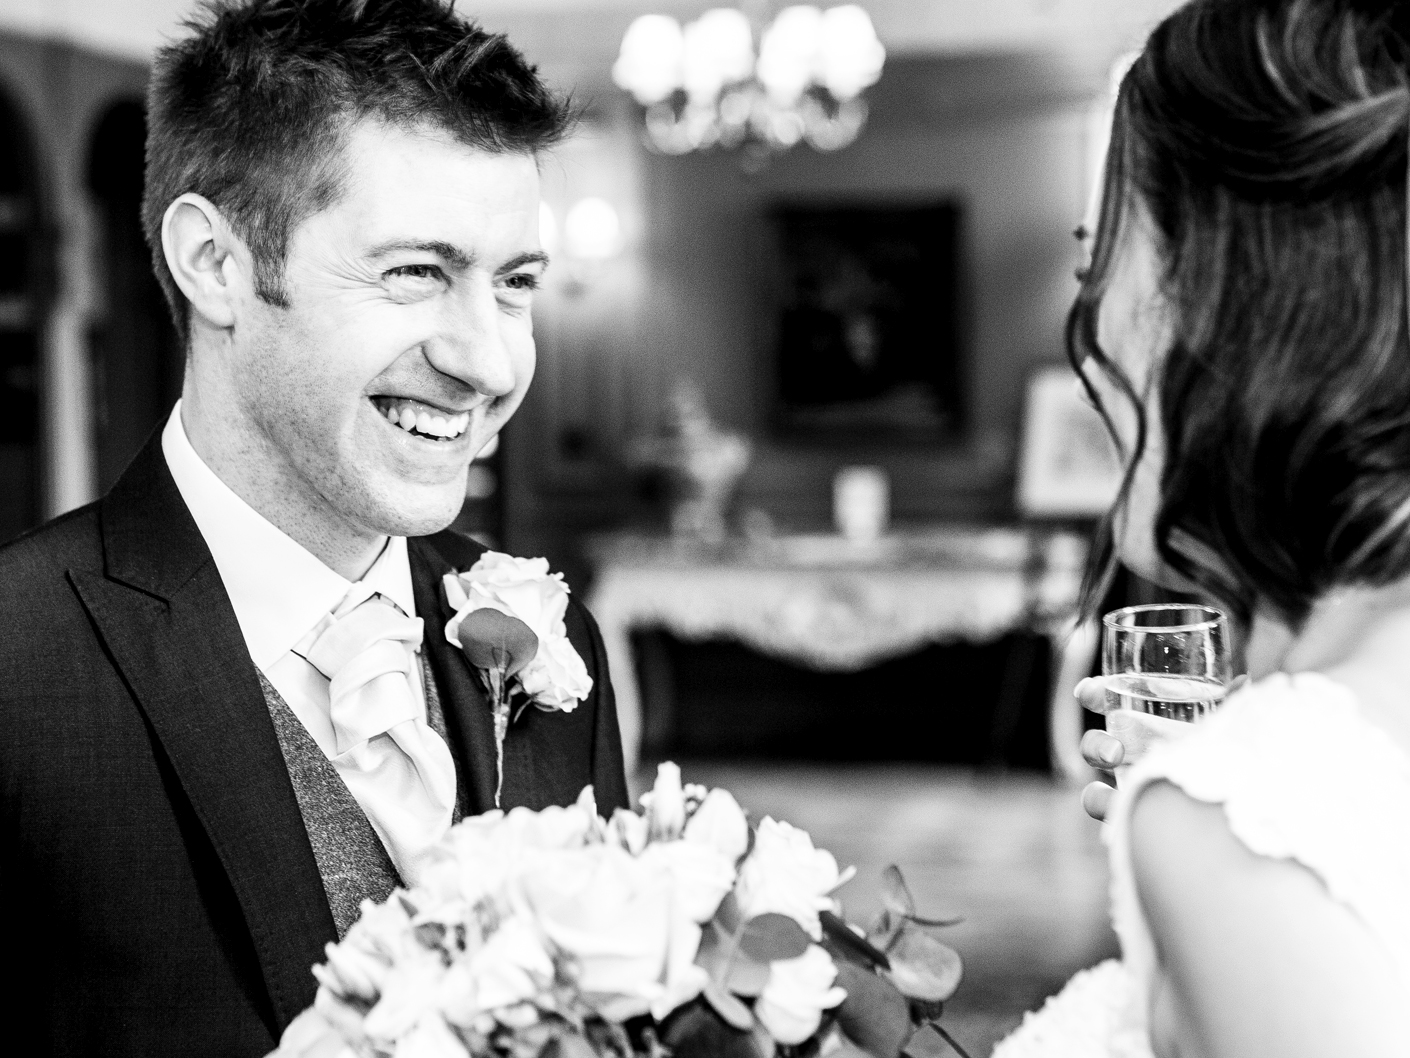 wedding-photography-of-the-groom-after-the-civil-ceremony-at-thornton-manor